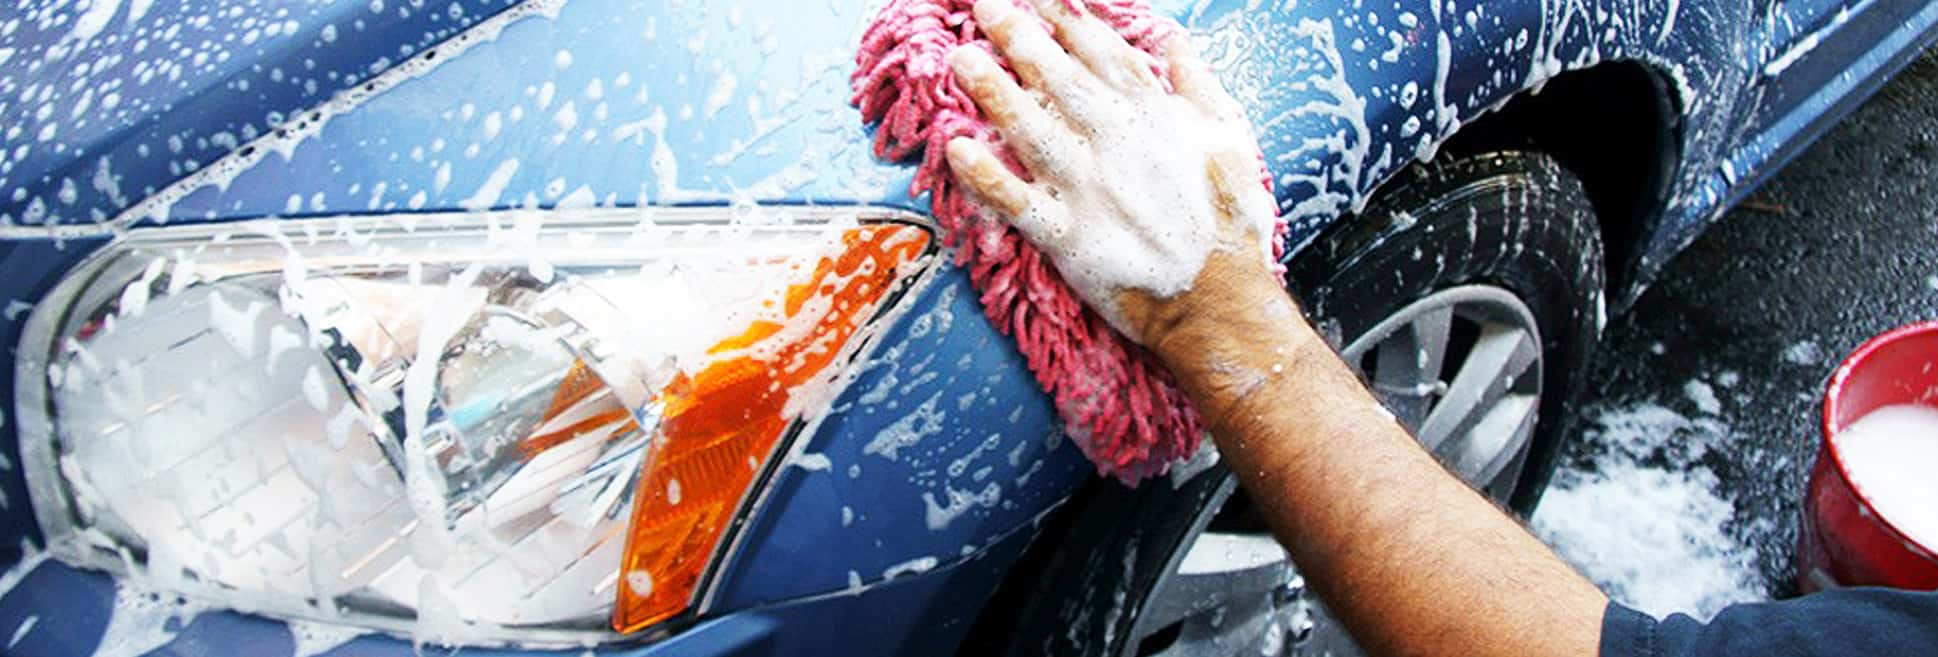 Carwash Macarthur, Hand Carwash Macarthur, Car Detailing Macarthur, Full detailing Macarthur, Detailing centre Macarthur, Car Polish Macarthur, buffing Macarthur, machine buff Macarthur, Carwash discount Macarthur, big discount Macarthur, Special Car wash Macarthur, low cost Macarthur, affordable Macarthur, hot deal Macarthur, quality Macarthur, professional Macarthur, Interior detail Macarthur, mini detailing Macarthur, paint protection Engine wash Macarthur, engine detailing Macarthur, in and out wash Macarthur, Carwash Campbelltown, Hand Carwash Campbelltown, Car Detailing Campbelltown, Full detailing Campbelltown, Detailing centre Campbelltown, Car Polish Campbelltown, buffing Campbelltown, machine buff Campbelltown, Carwash discount Campbelltown, big discount Campbelltown, Special Car wash Campbelltown, low cost Campbelltown, affordable Campbelltown, hot deal Campbelltown, quality Campbelltown, professional Campbelltown, Interior detail Campbelltown, mini detailing Campbelltown, paint protection Engine wash Campbelltown, engine detailing Campbelltown, in and out wash Campbelltown